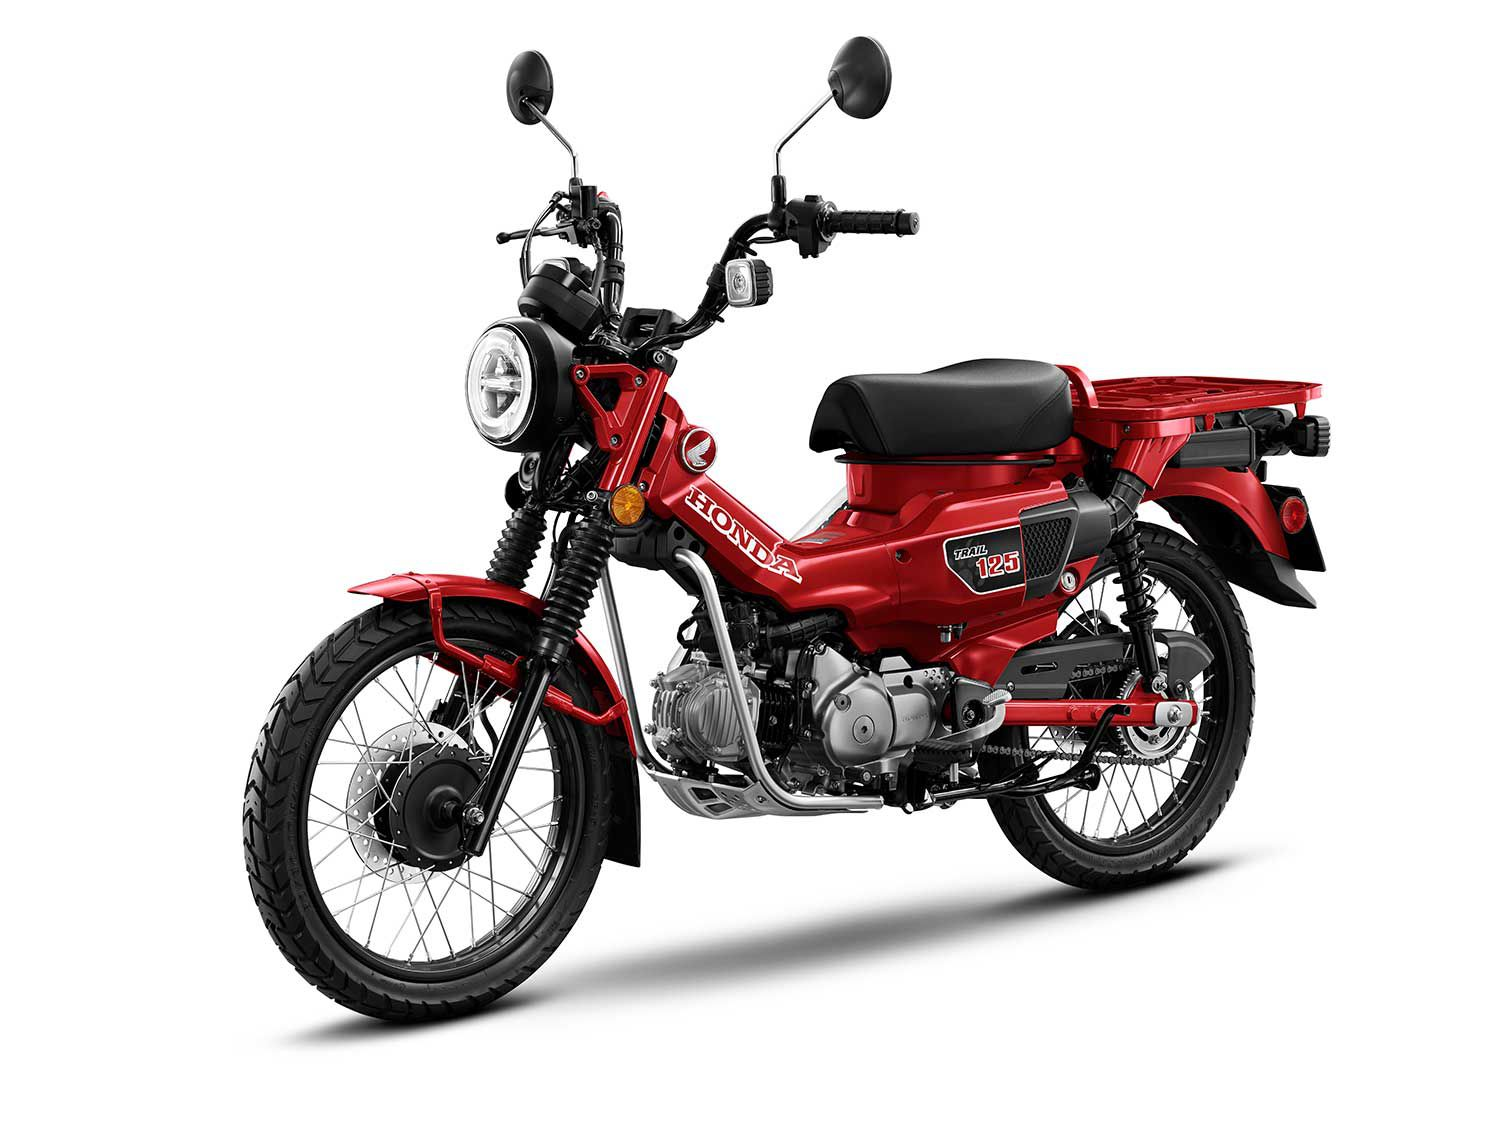 American Honda announces that it will import its Honda Trail 125 ABS for the 2021 model year.